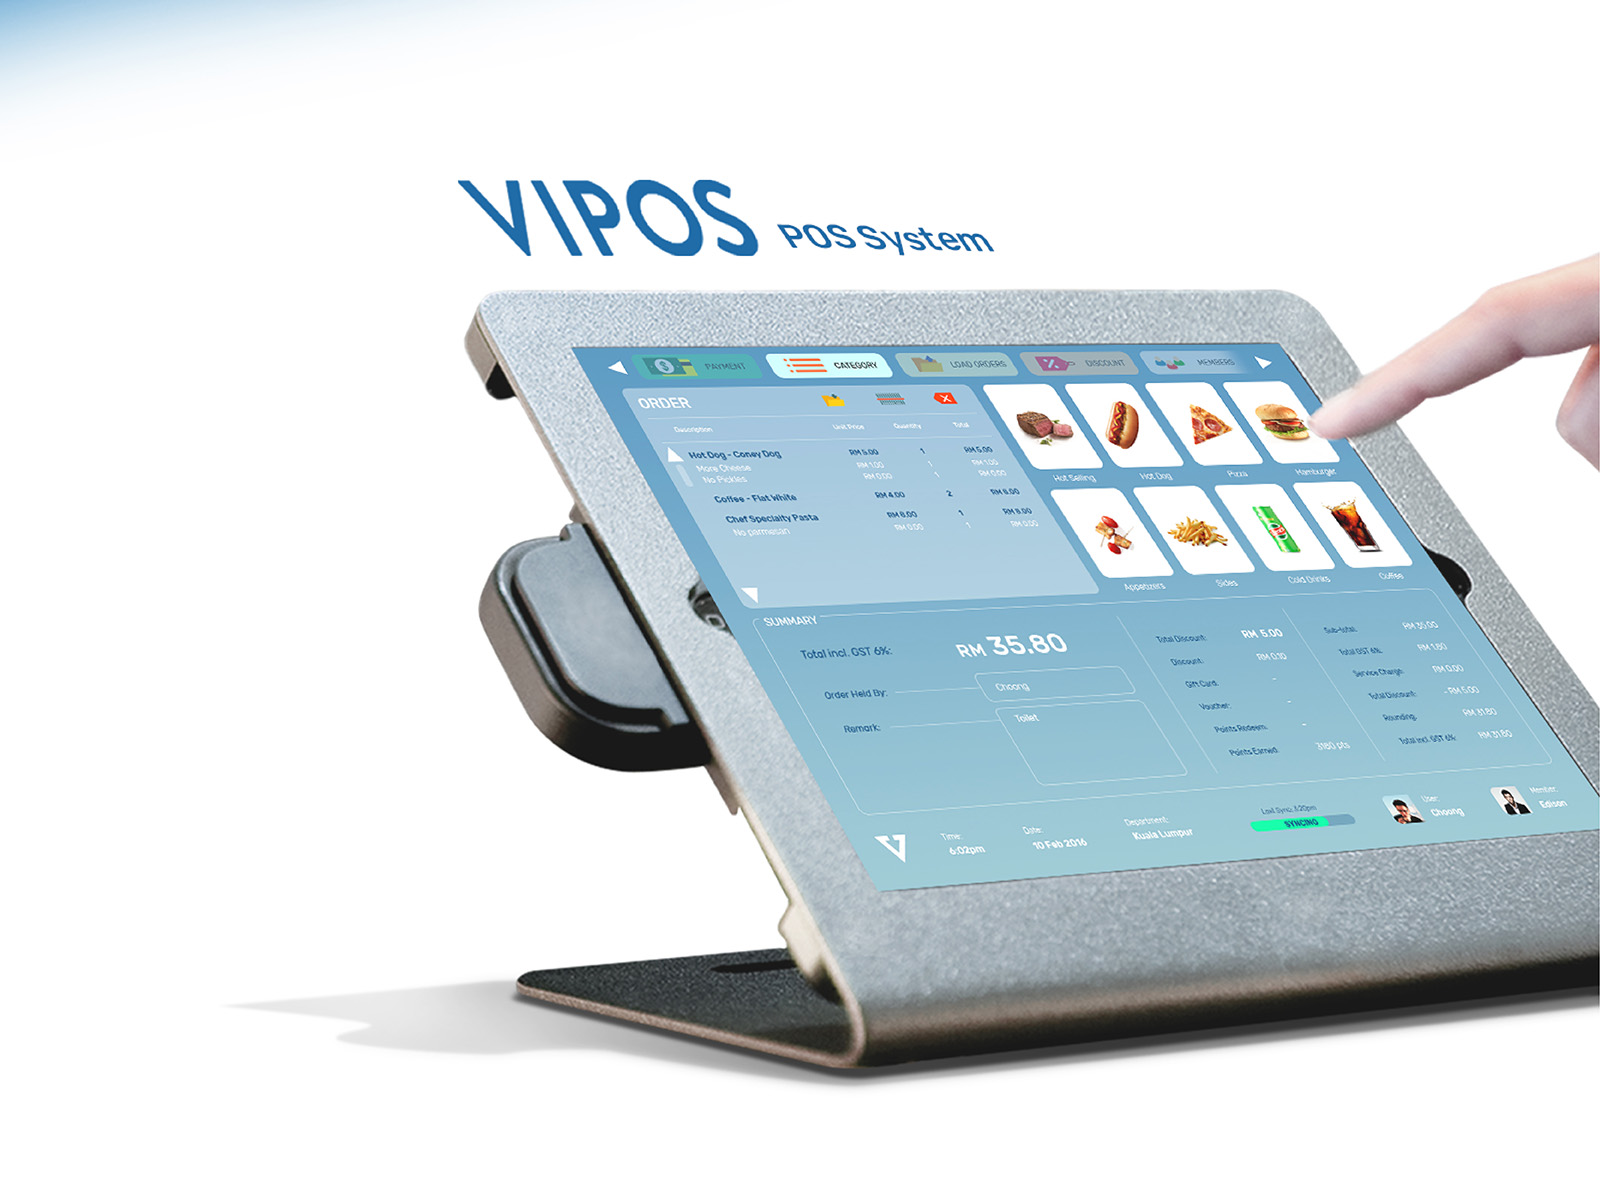 Vipos POS system product user interface and user experience design